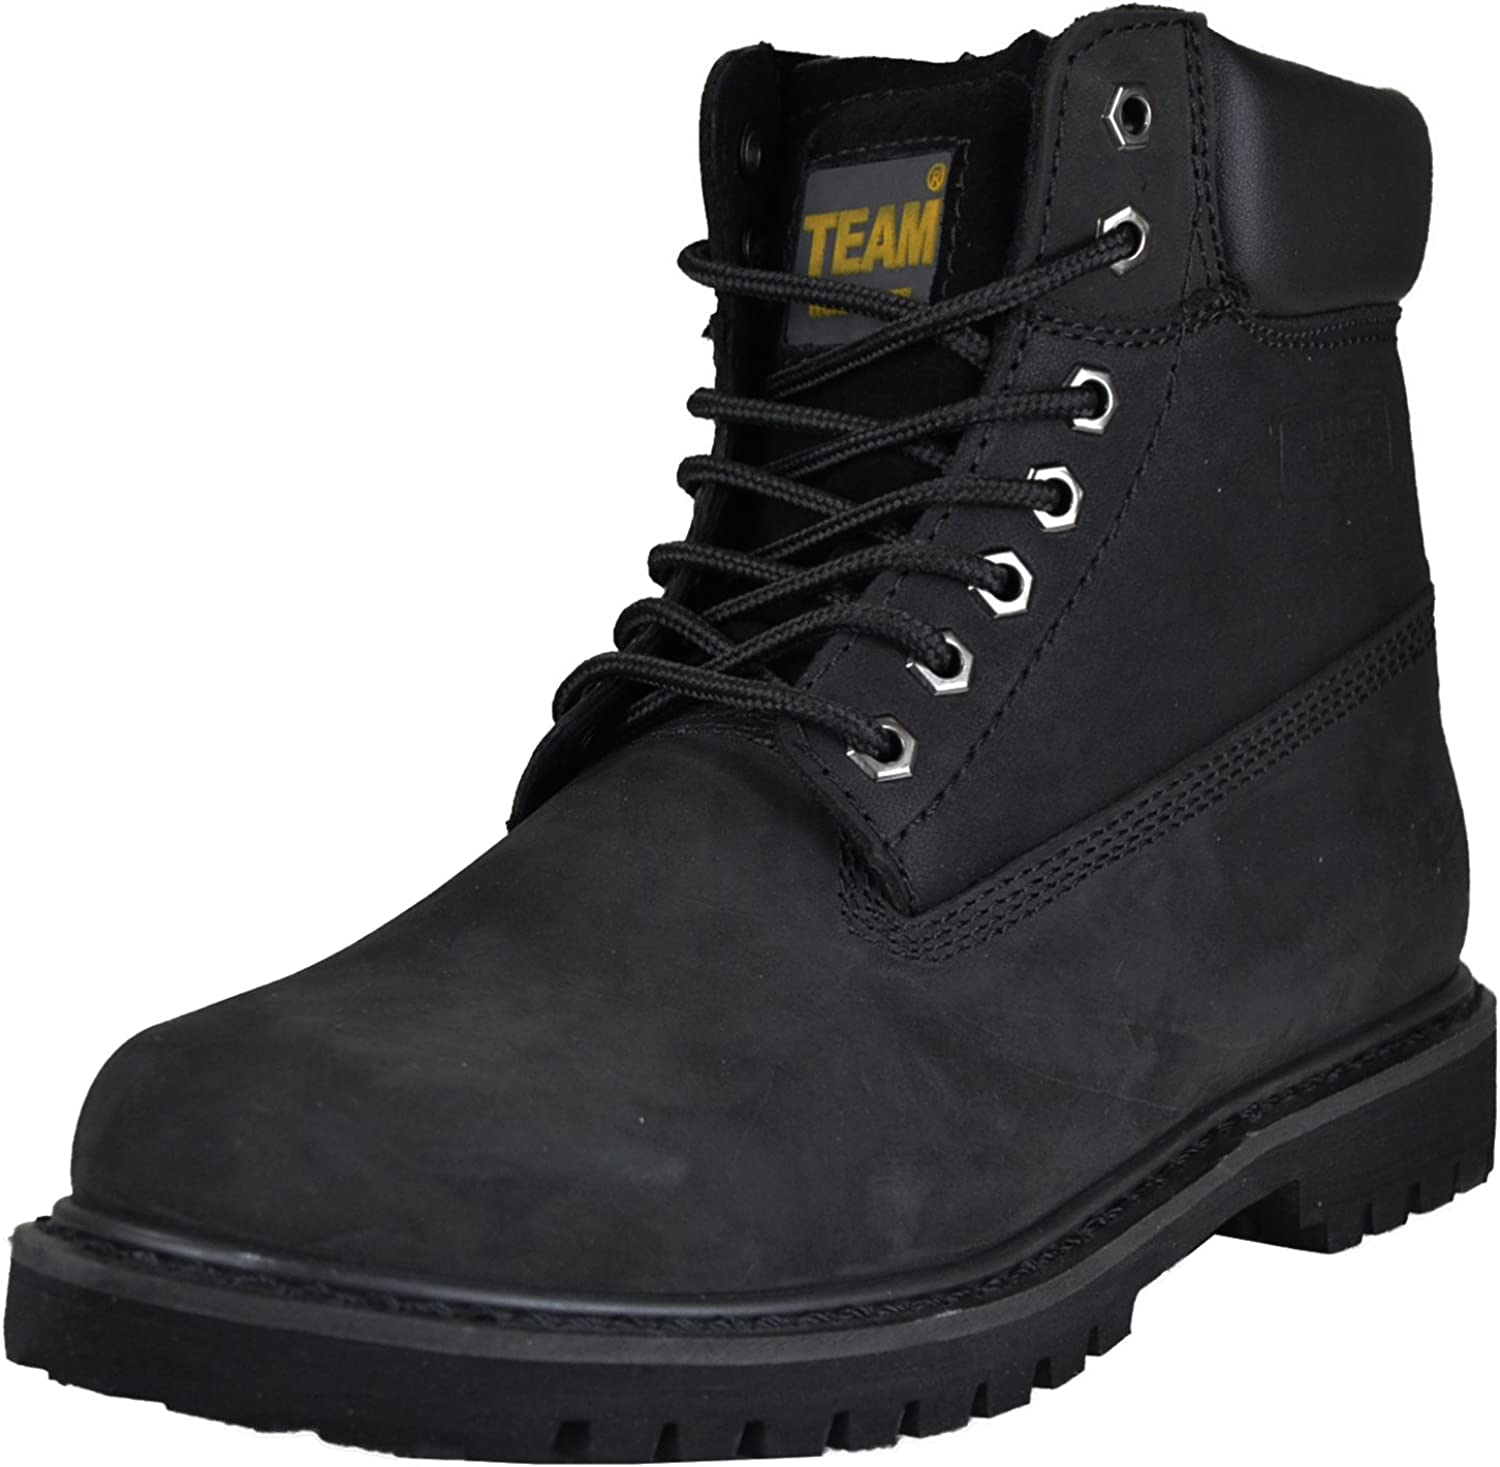 Mens Boots Water and Oil Resistant Work